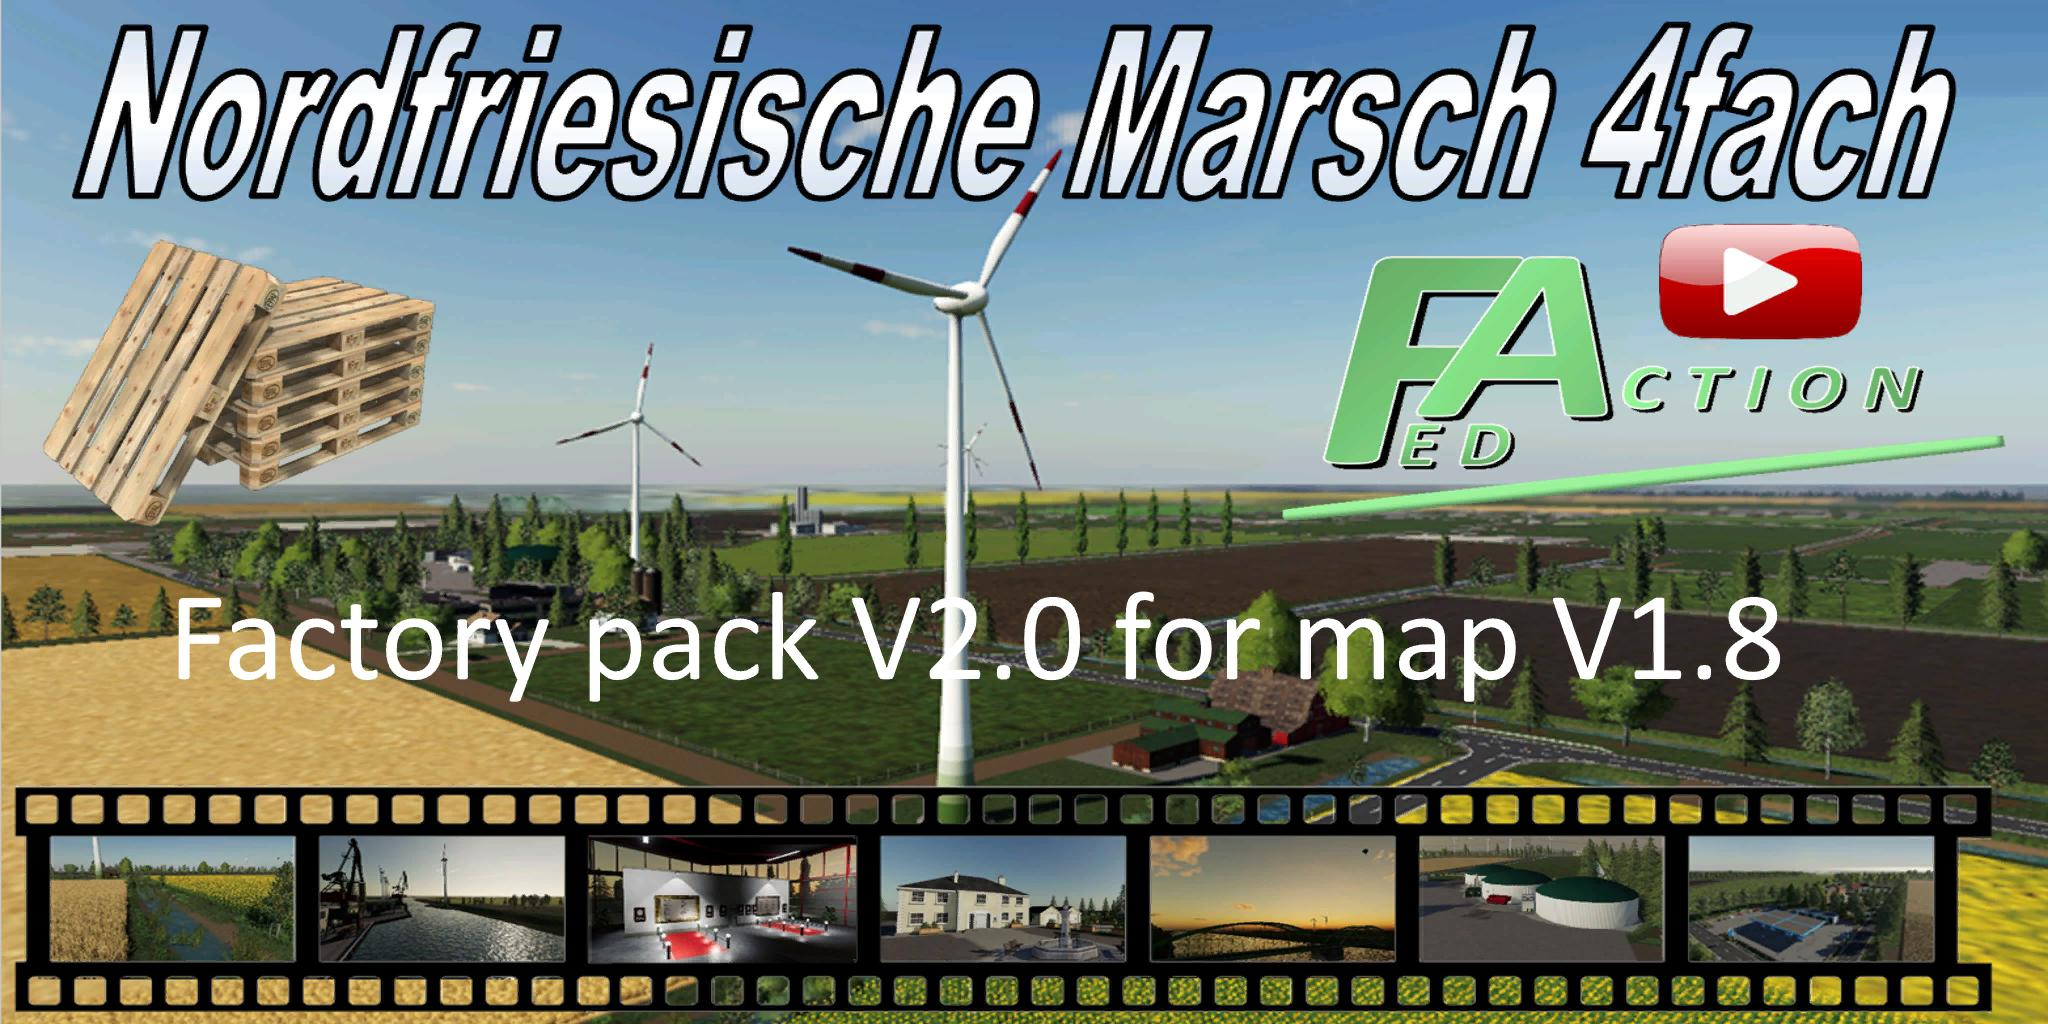 FACTORY PACK FOR NF MARSCH 4FACH V2.0